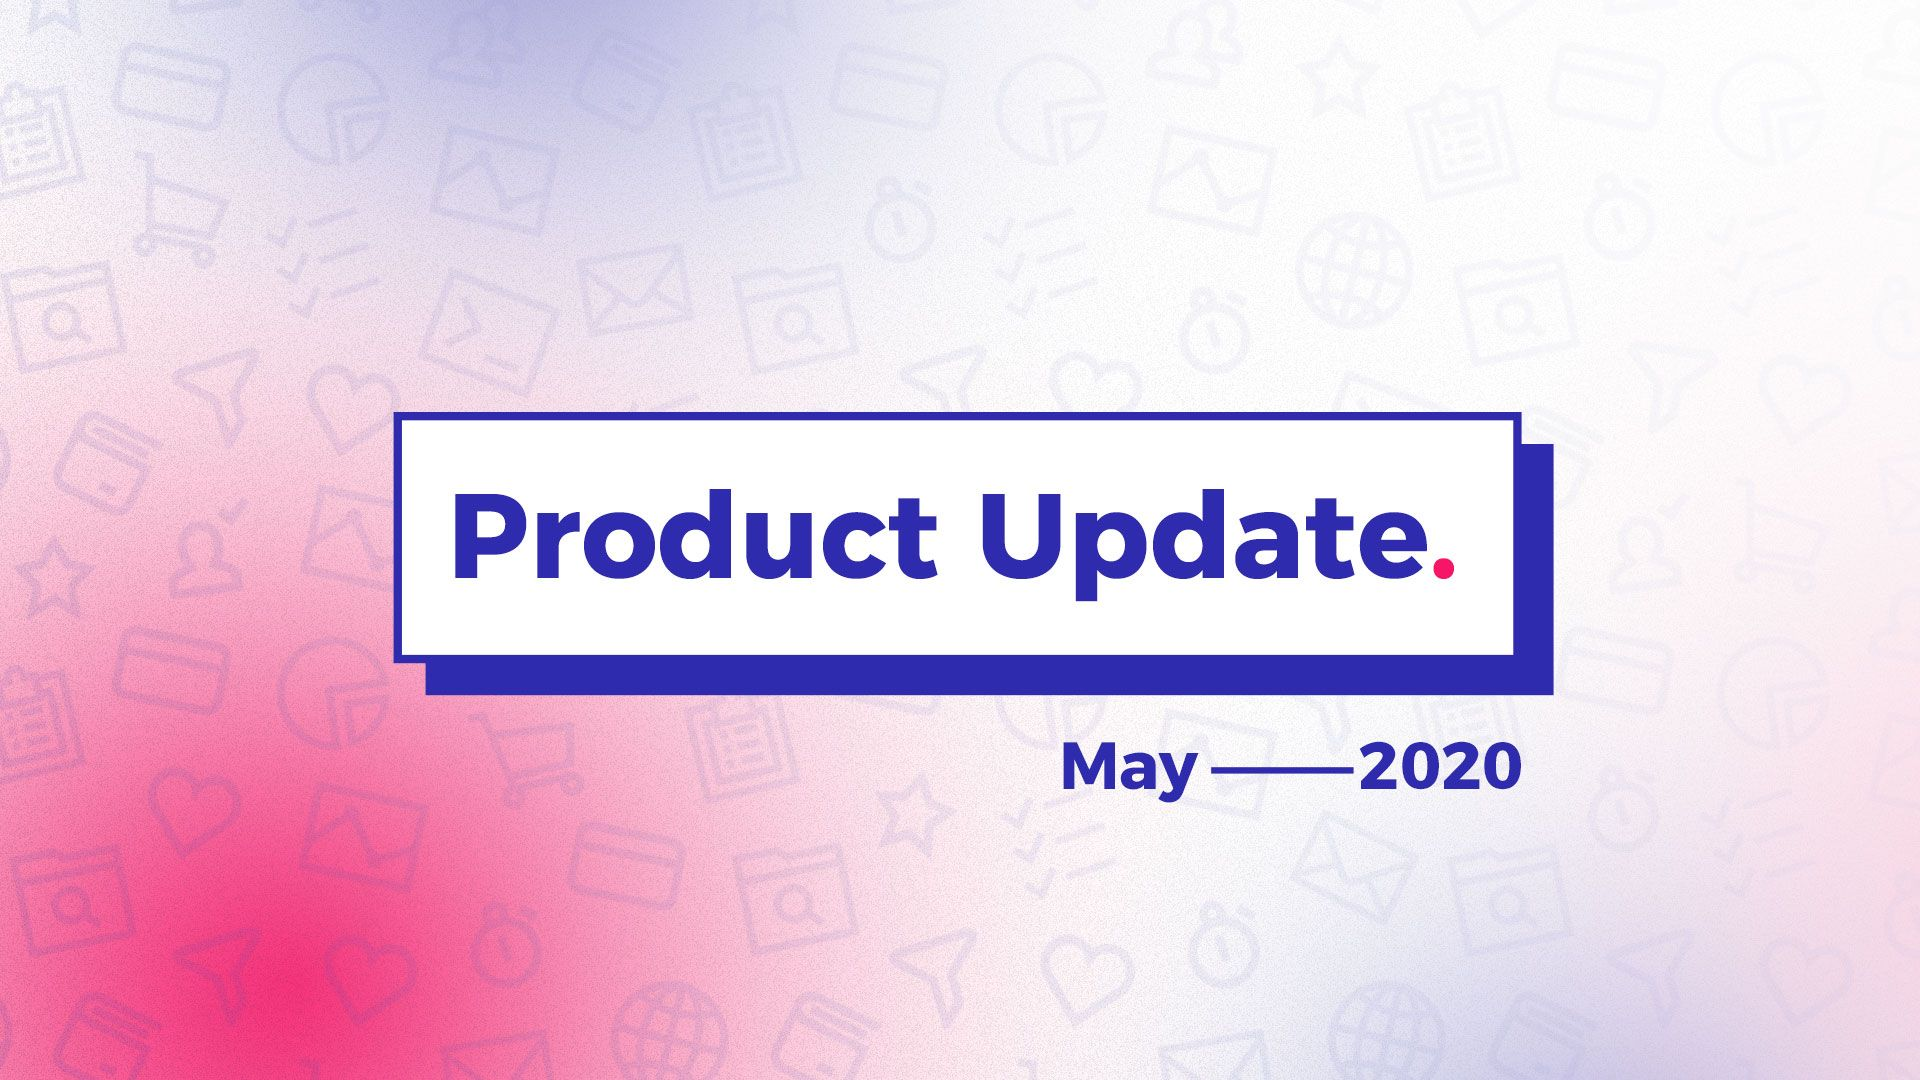 Product Updates May 2020